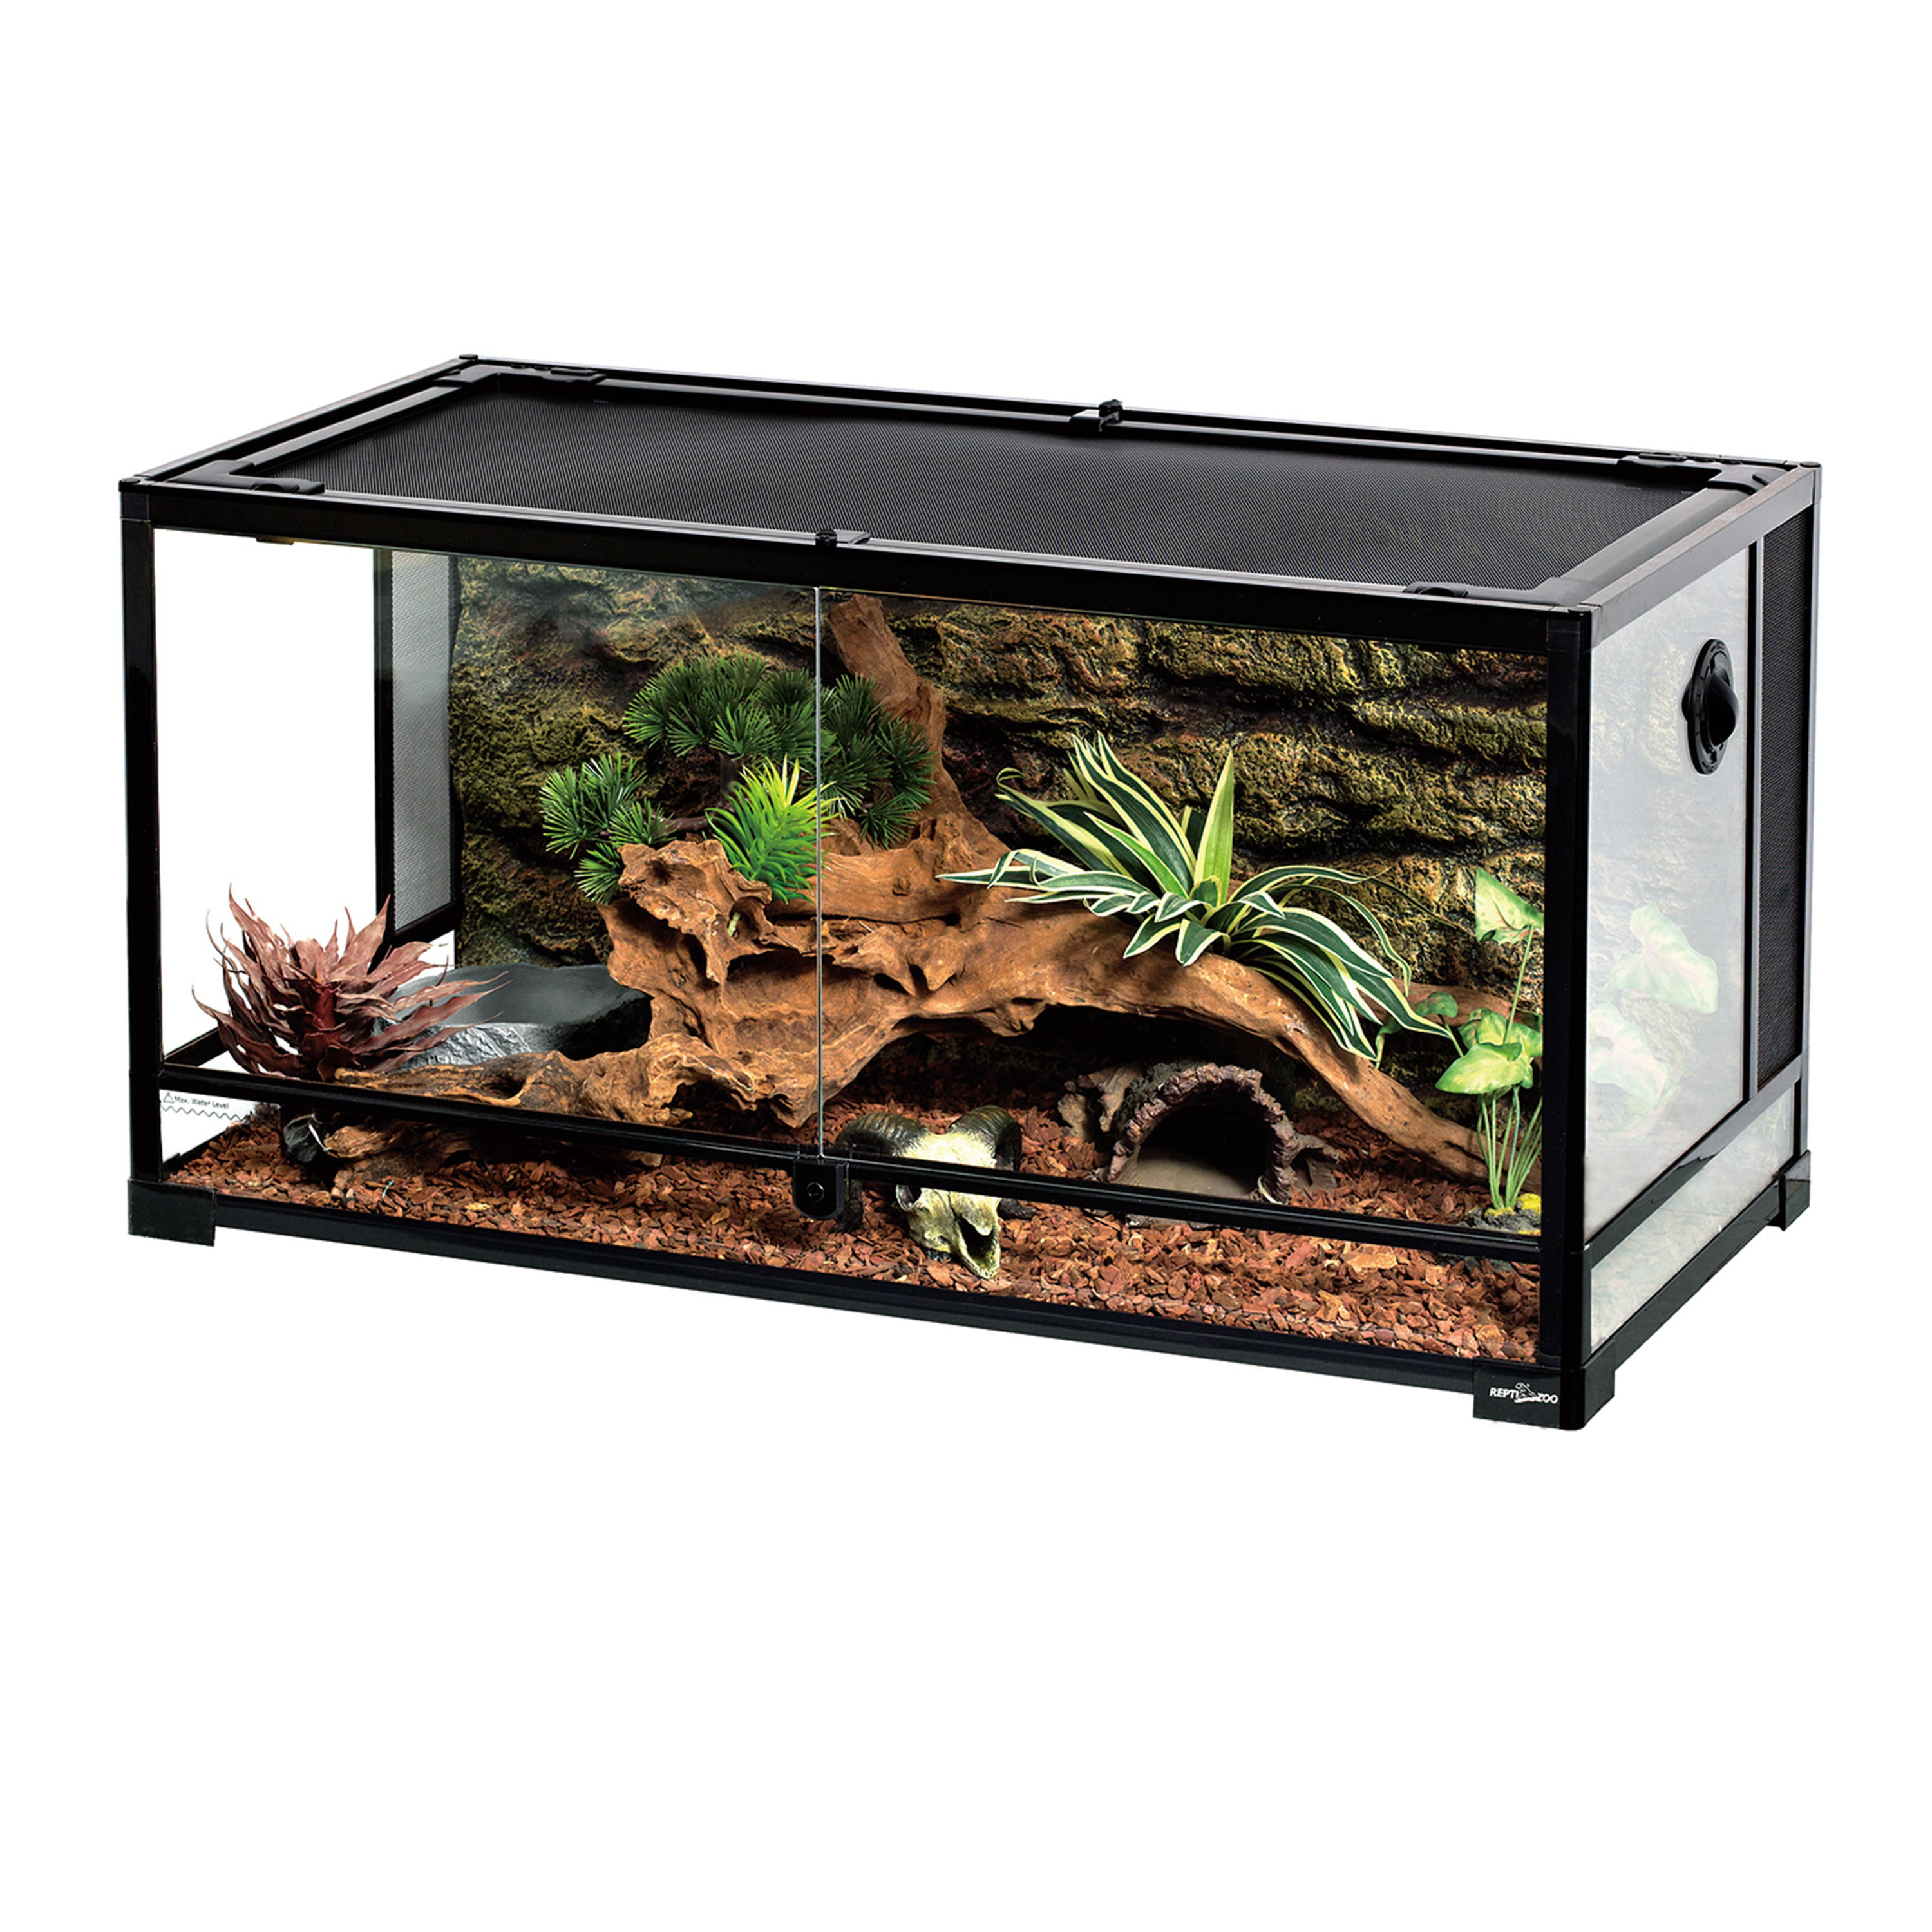 Reptizoo Reptile Glass Terrarium Double Hinge Door With Screen Ventilation Reptile Terrarium 36 X 18 X 18 Walmart Com Walmart Com